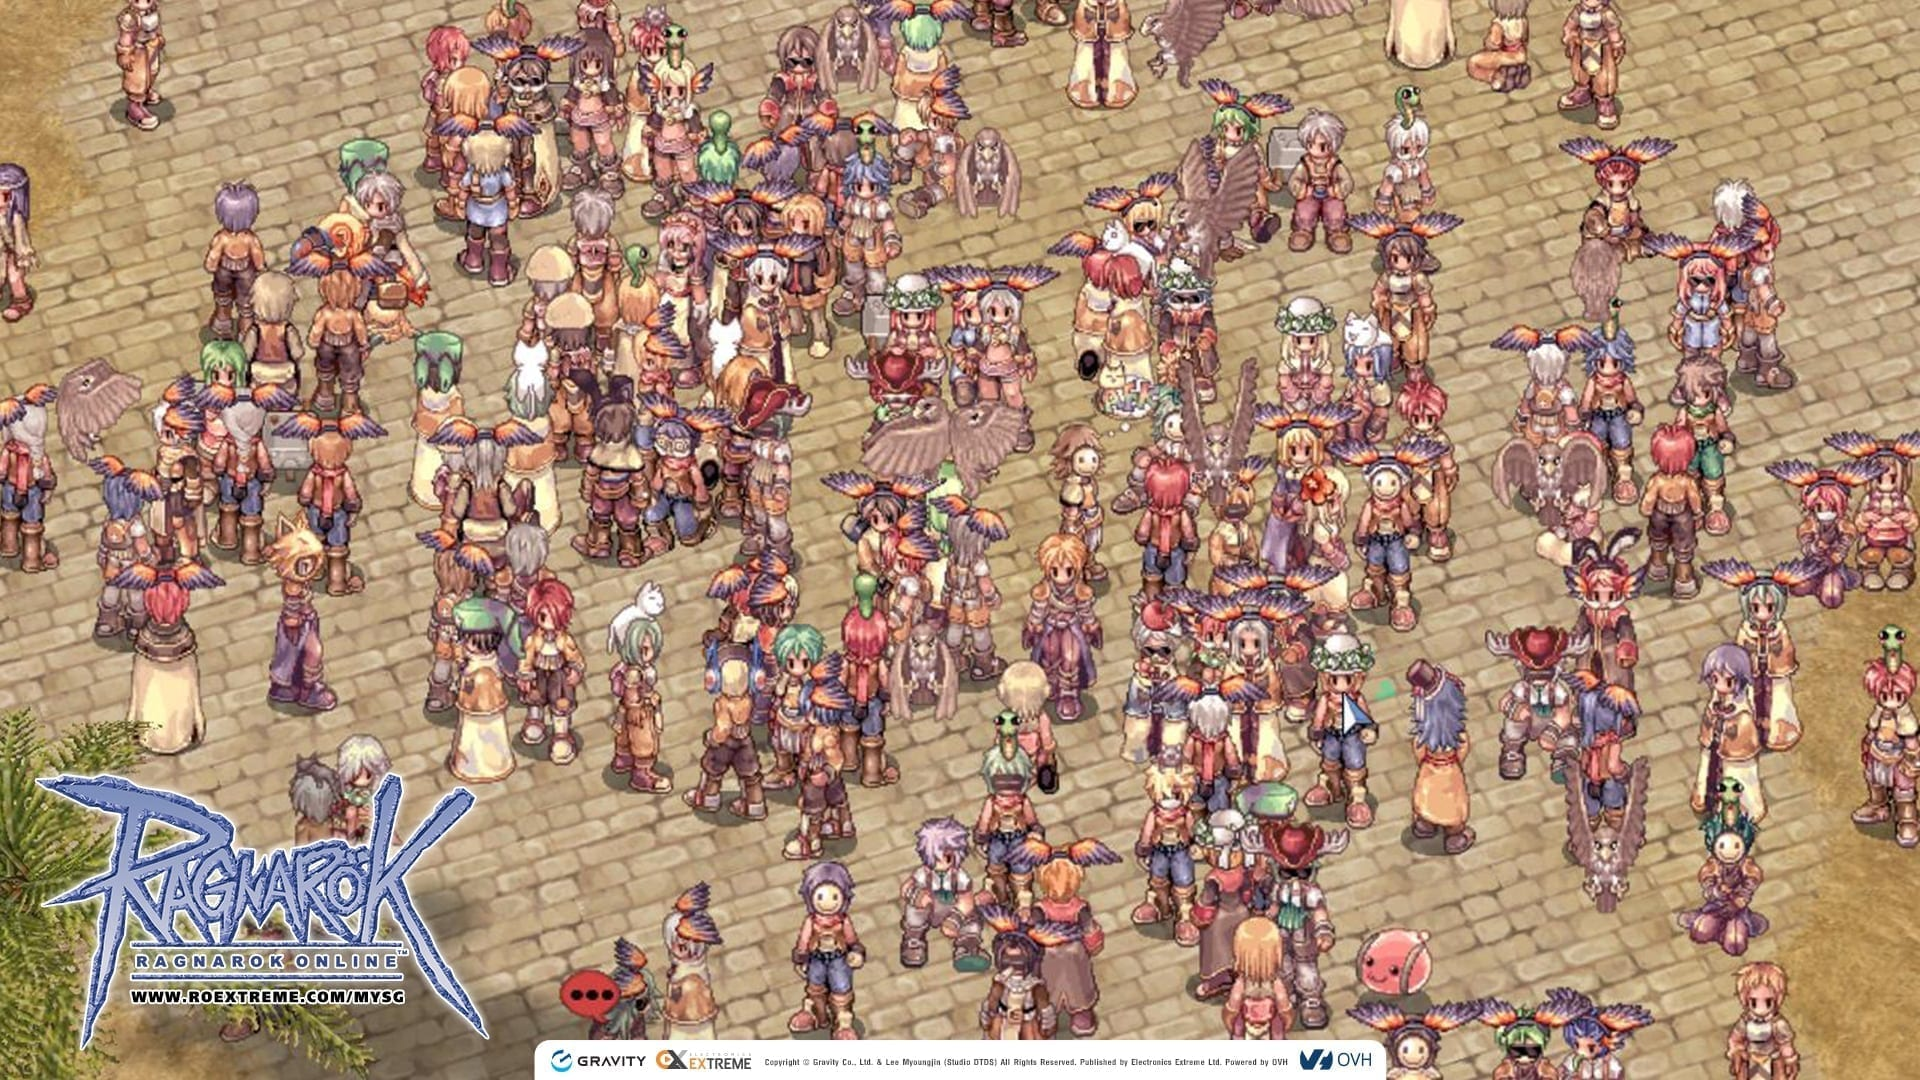 Ragnarok Online – Official server for classic MMORPG returns